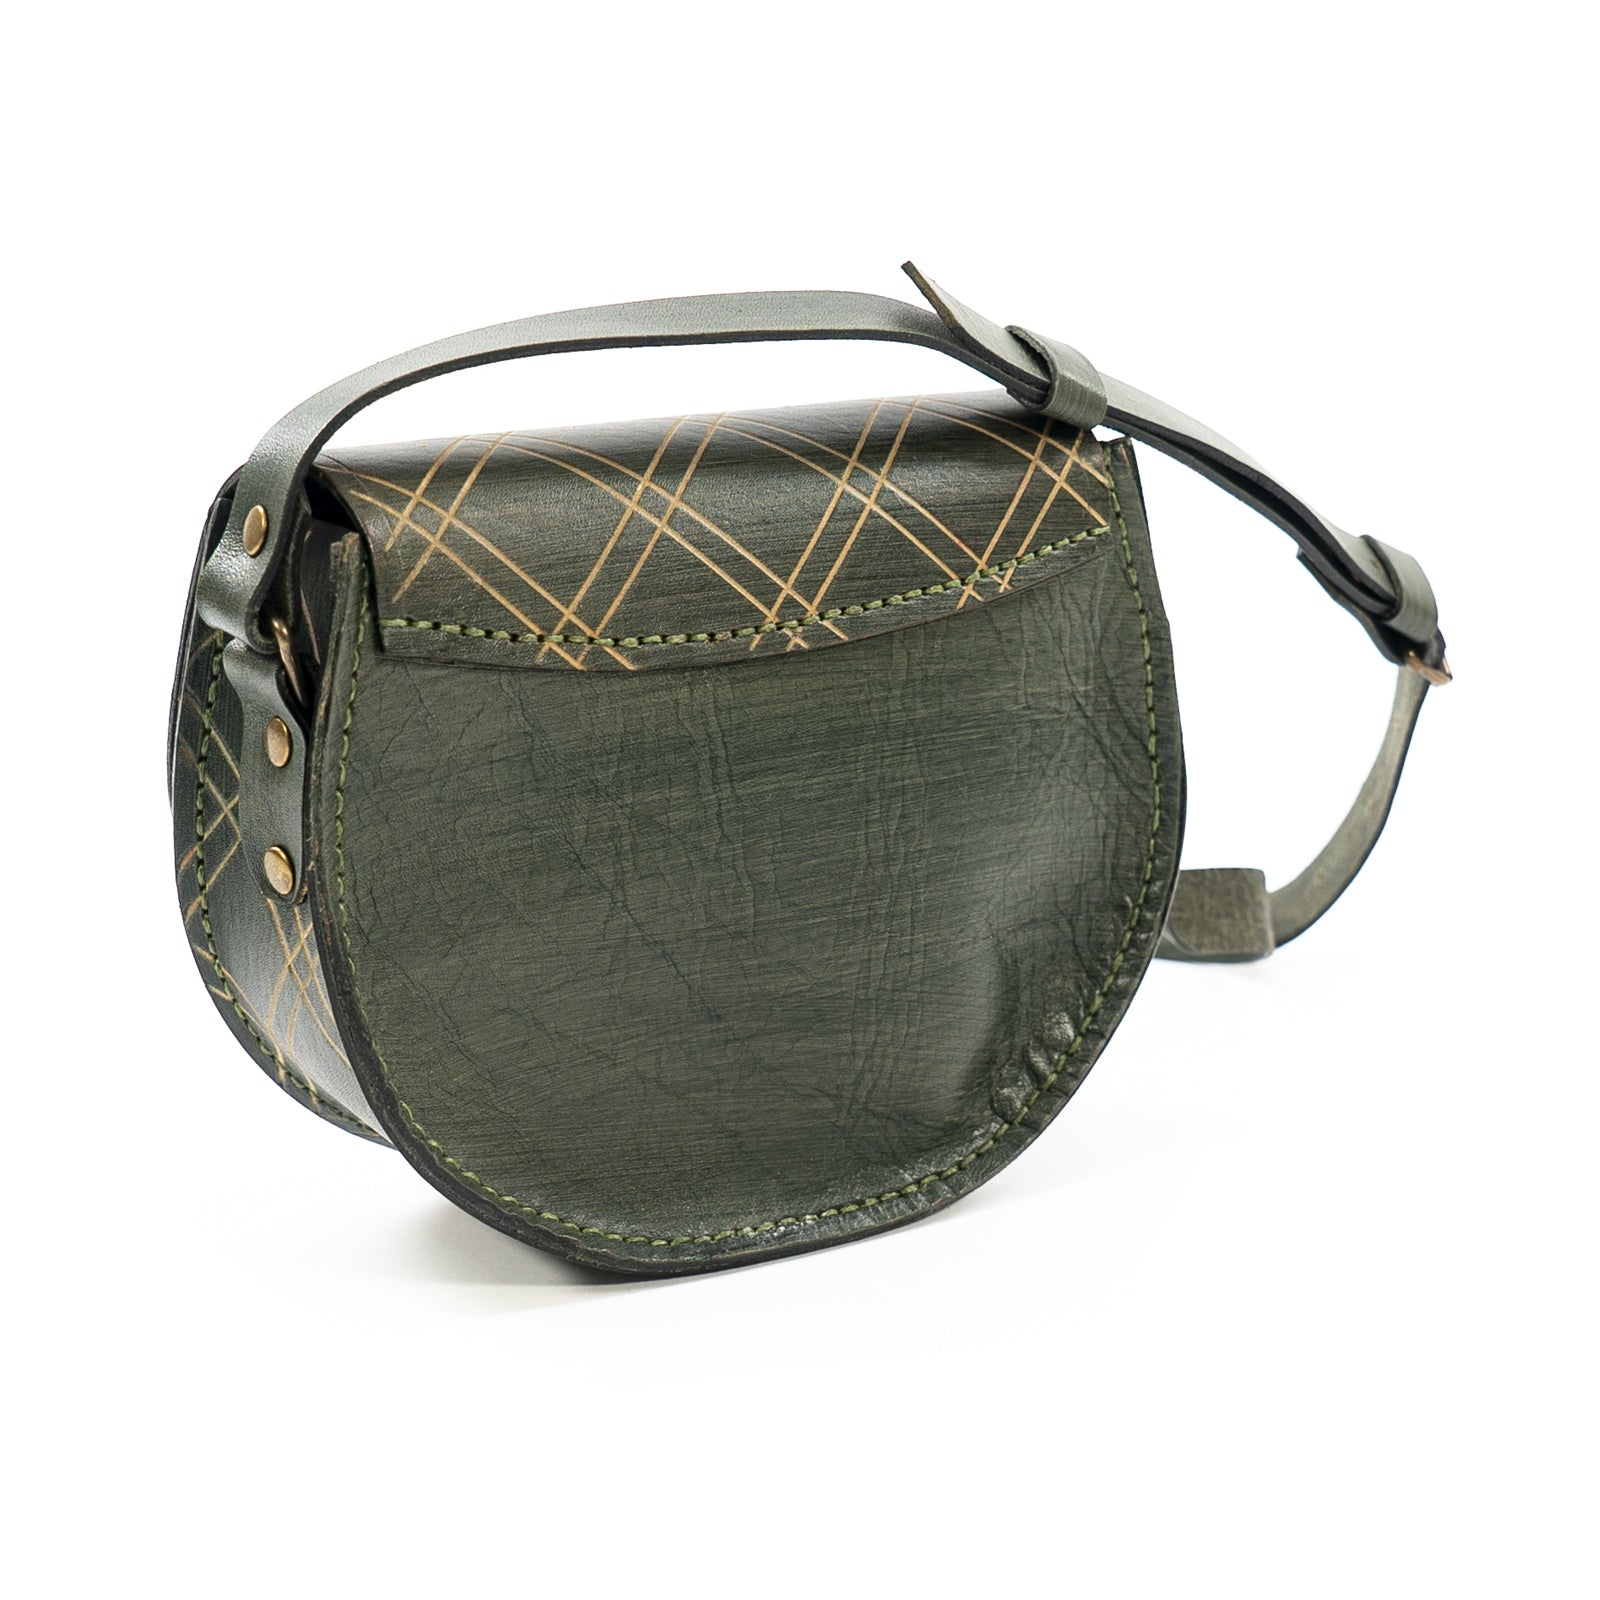 Derifix Joya Dark Green Women's Handmade Leather Bag